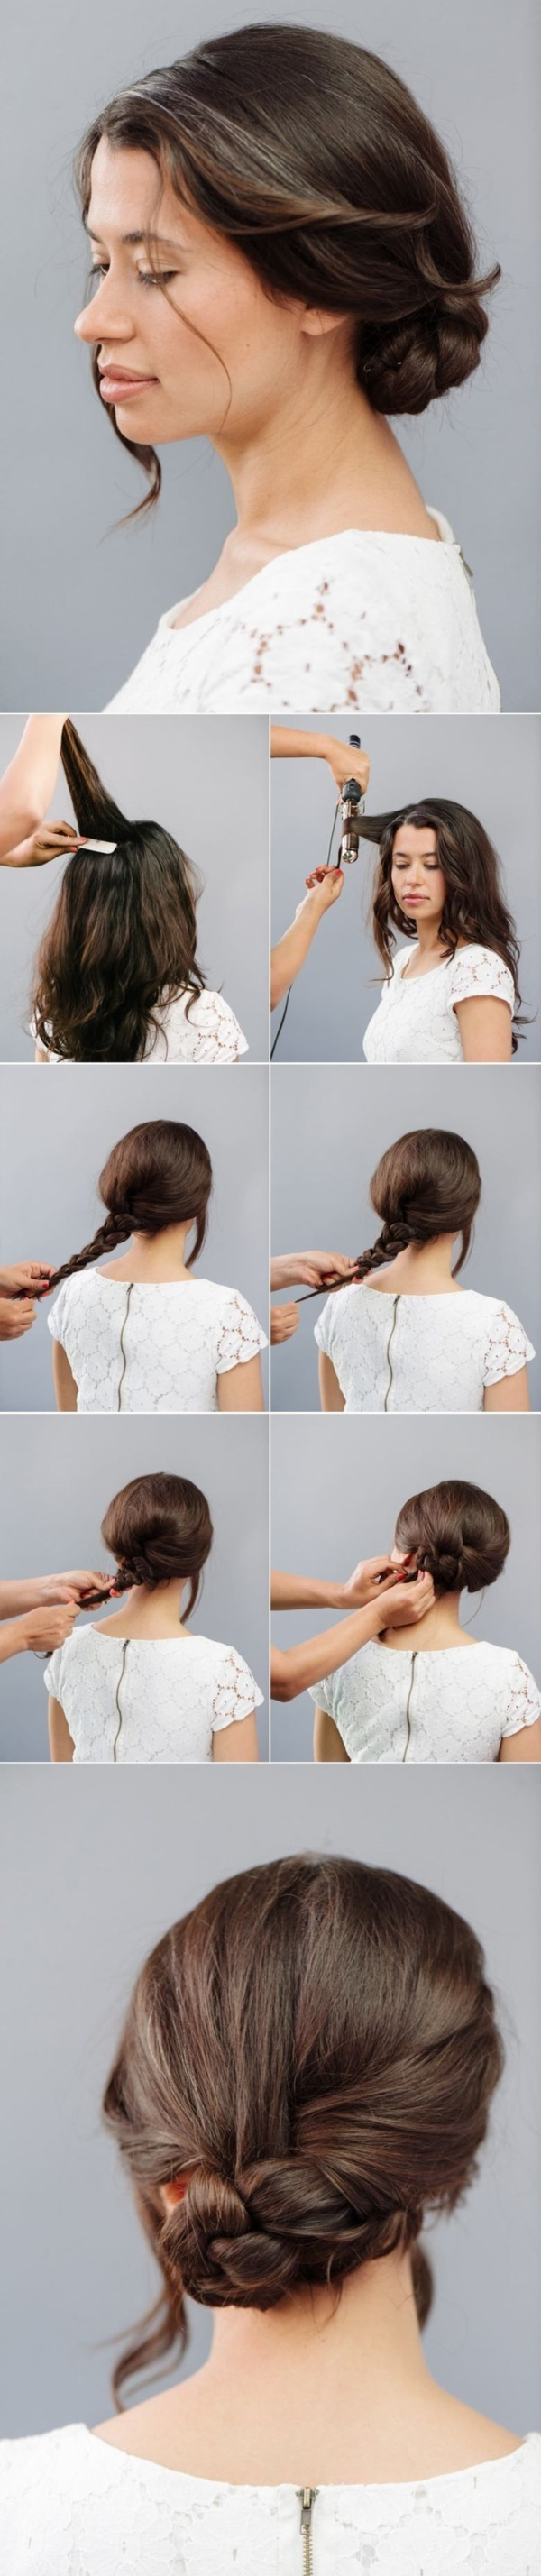 Admirable 101 Easy Diy Hairstyles For Medium And Long Hair To Snatch Attention Hairstyles For Men Maxibearus